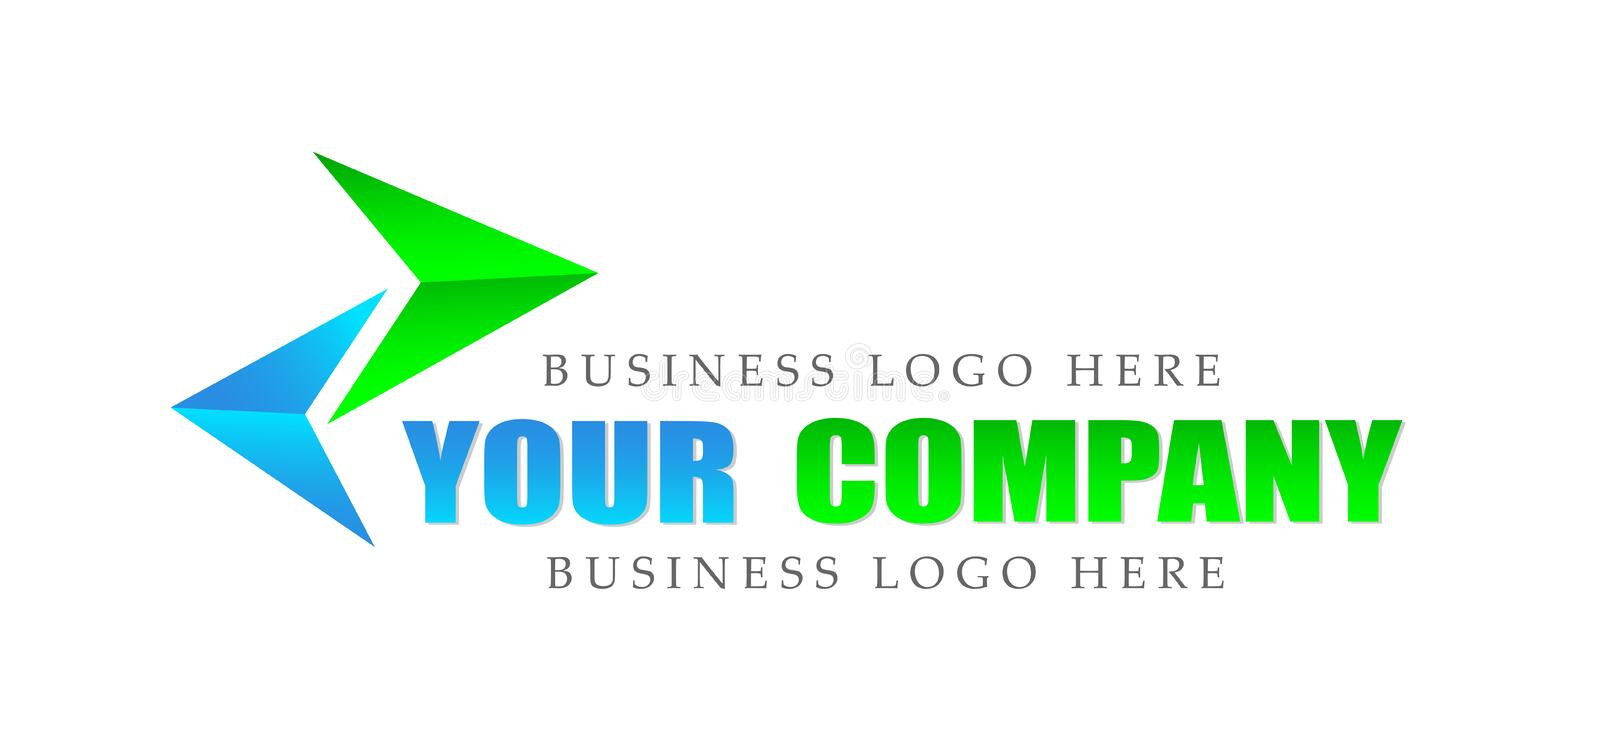 Abstract two directions focused Logo, success on Corporate Invest Business Logo design. Financial Investment logol. Abstract two directions focused Logo, success vector illustration